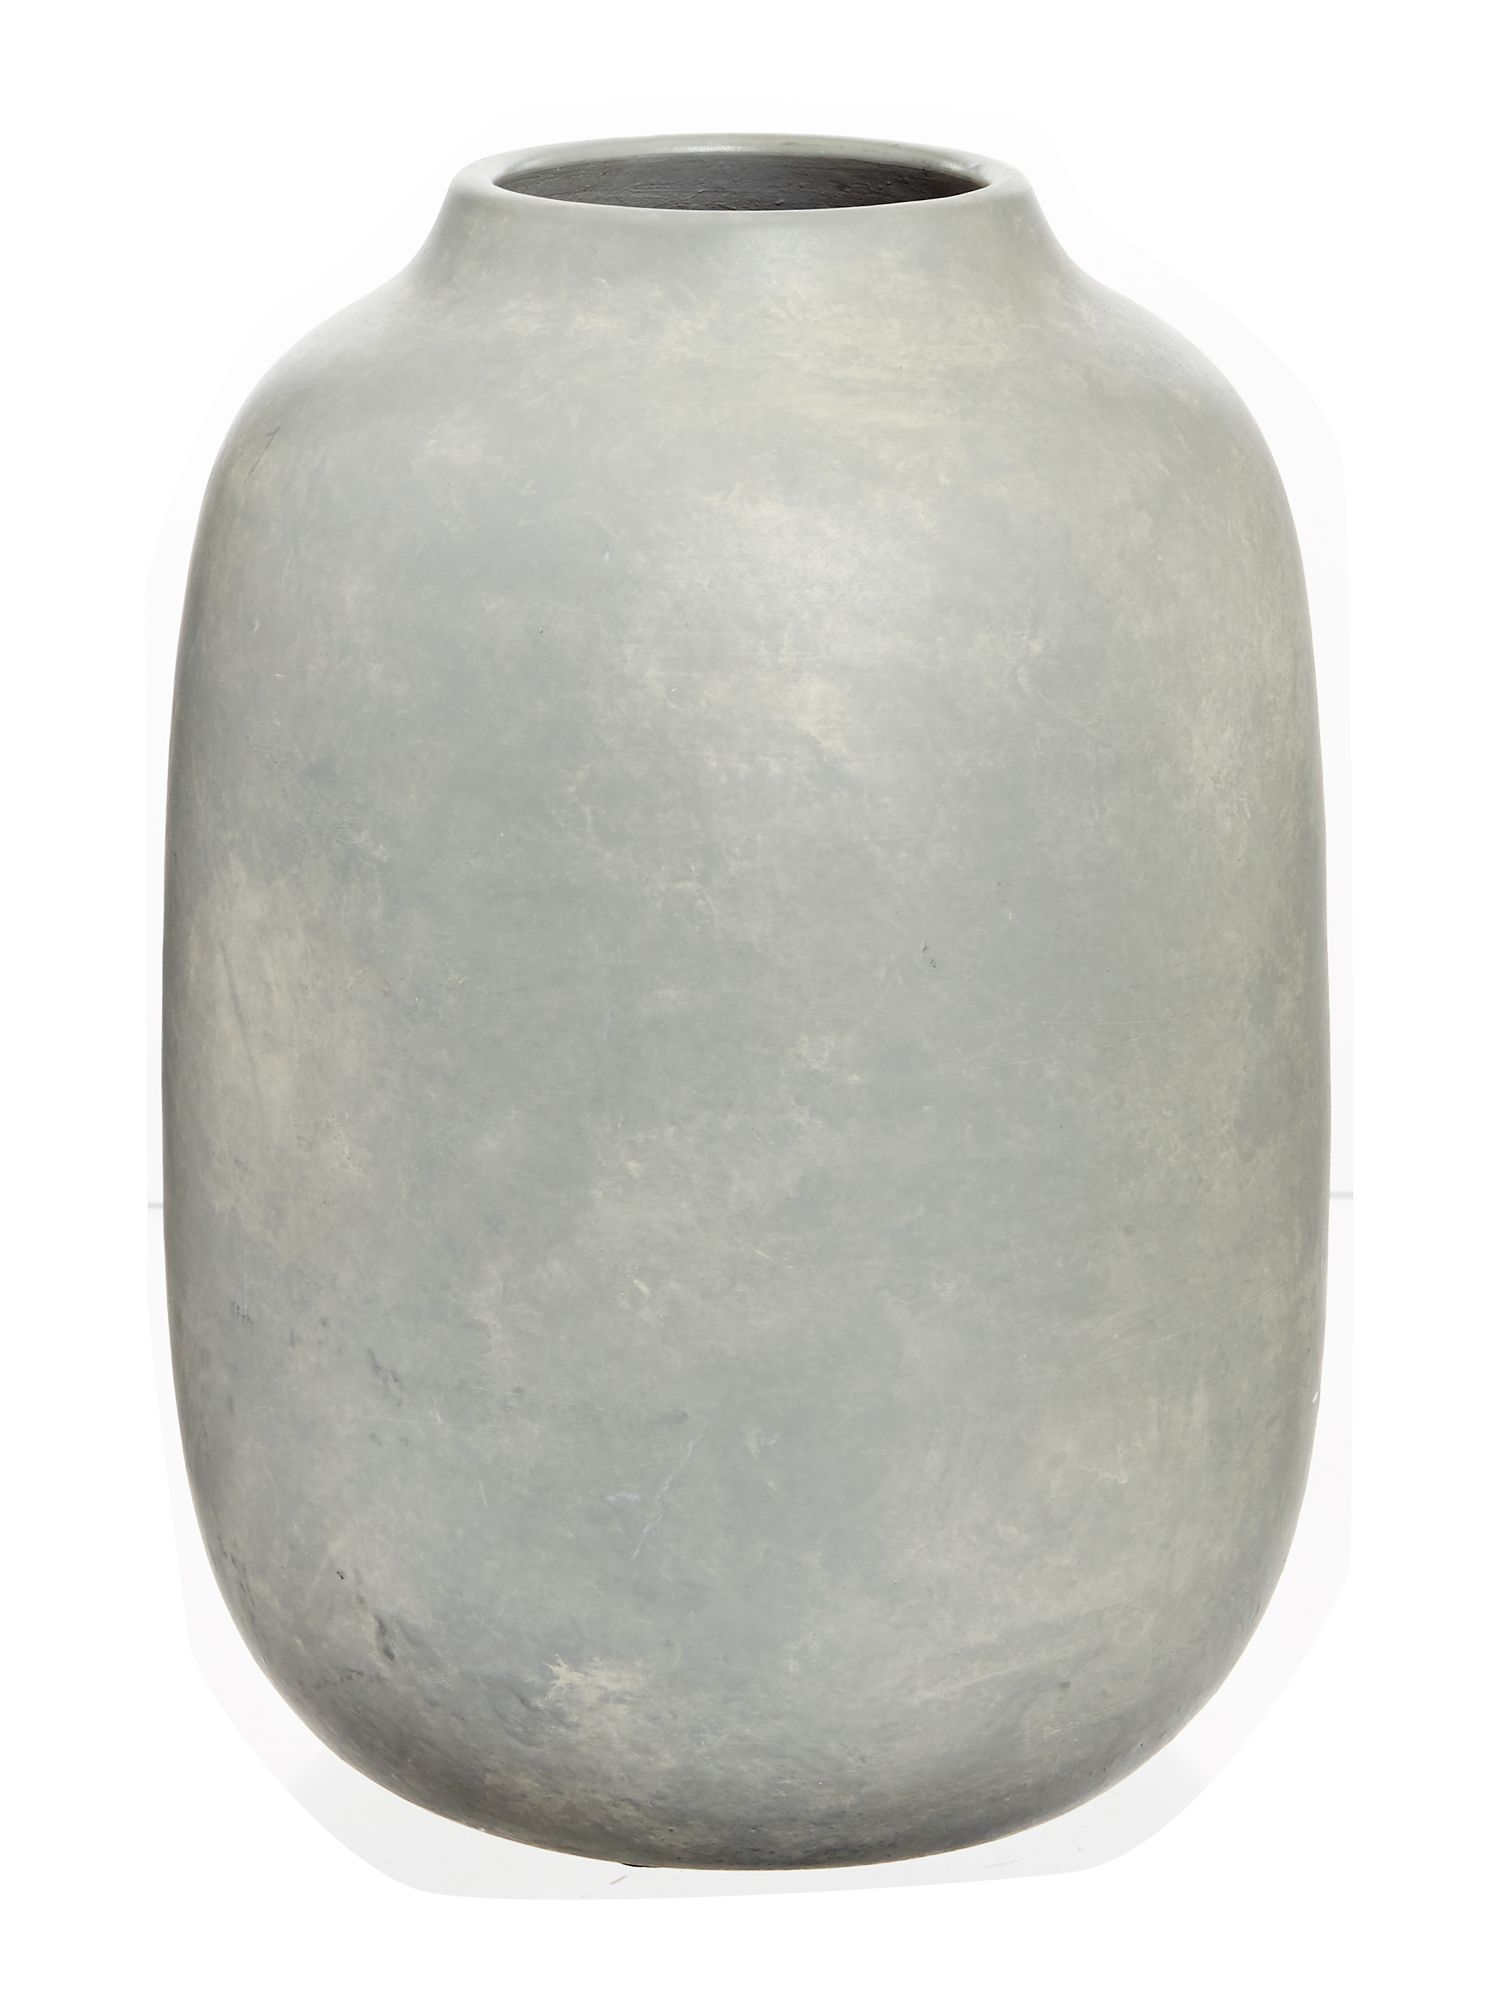 Image of Gray & Willow Berau large grey vase